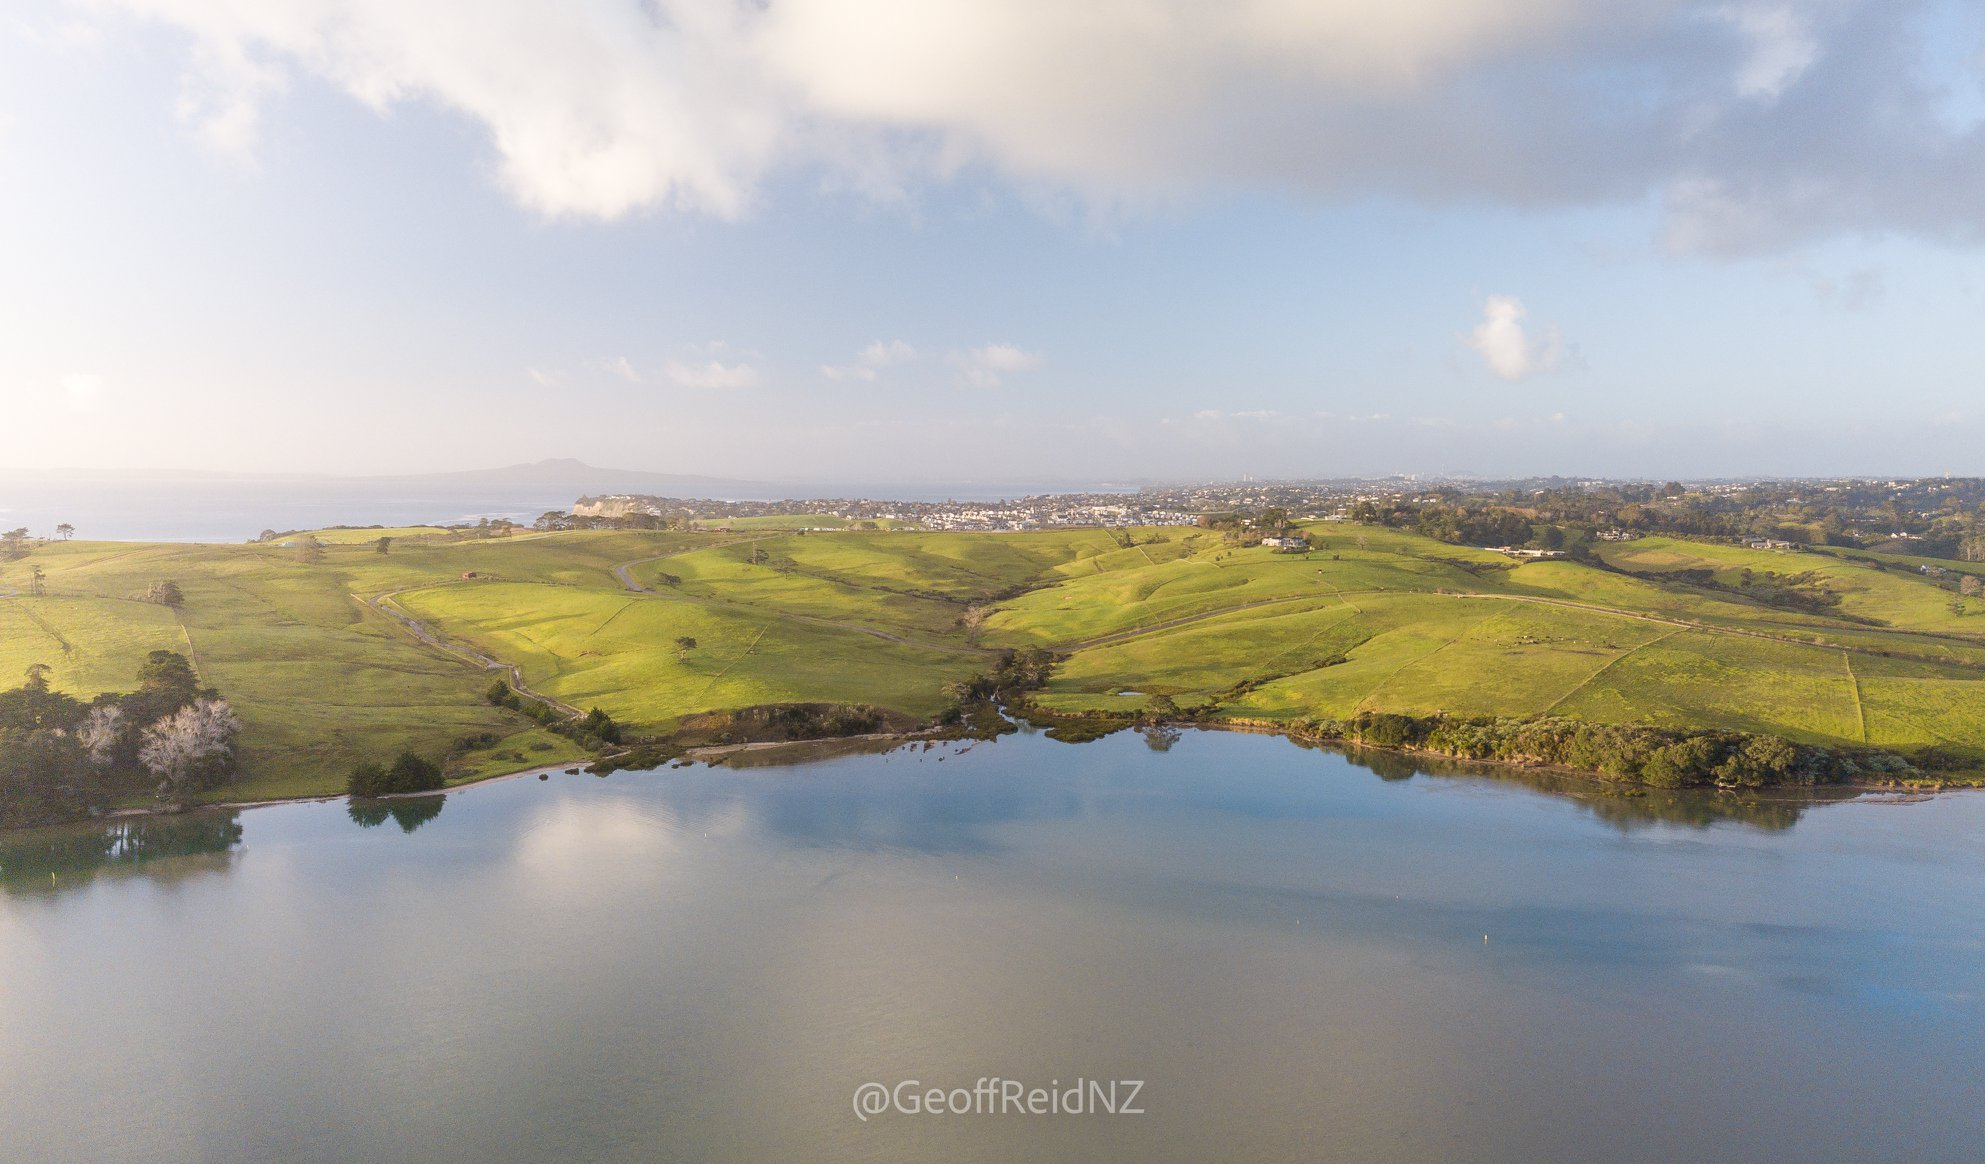 The Okura Estuary is on Auckland's North Shore and is an important wildlife habitat.Photo credit: Geoff Reid, Photographer and Environmentalist.